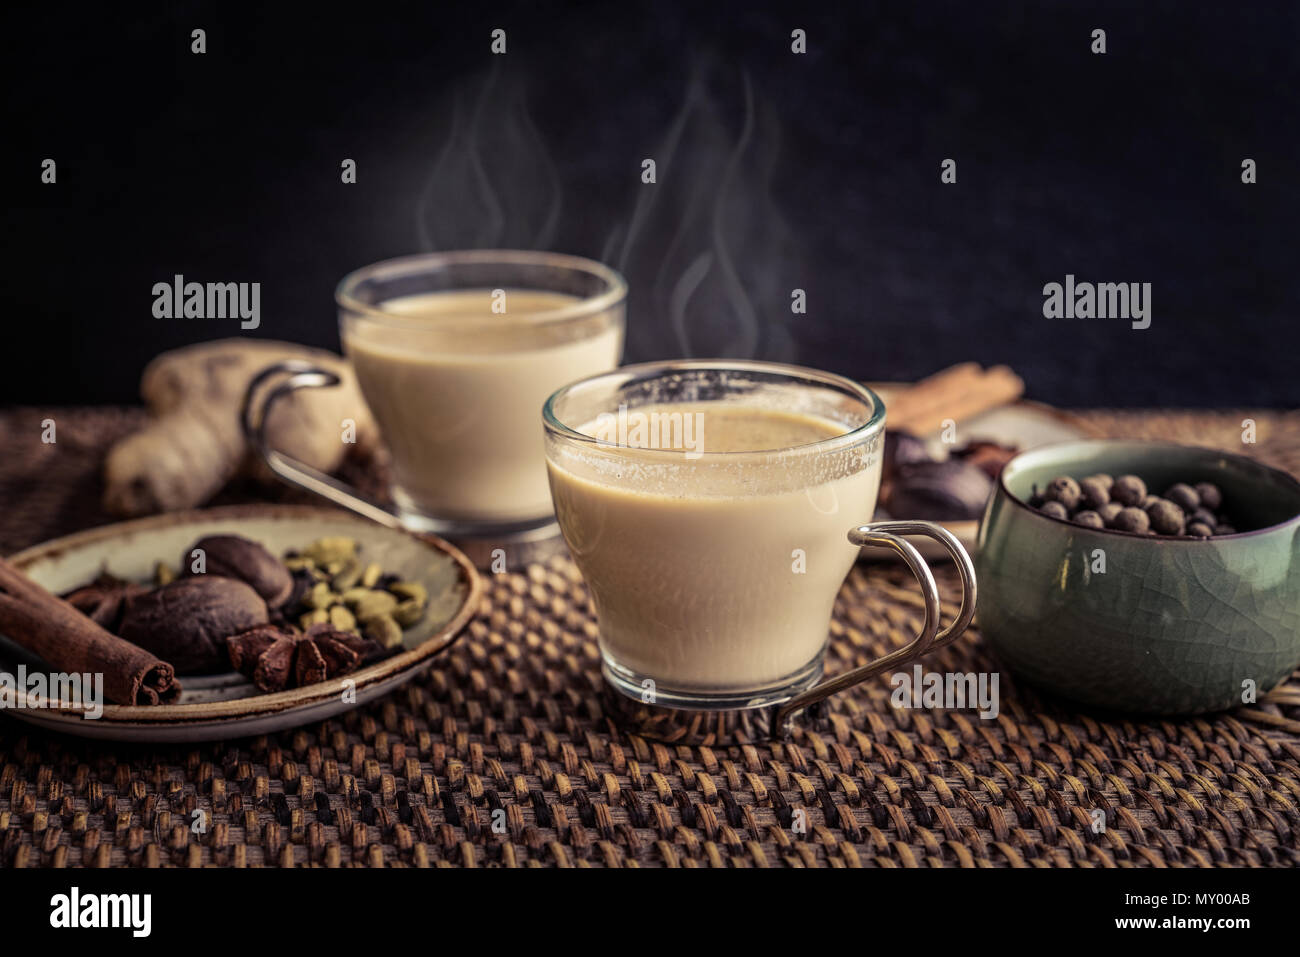 Traditional indian drink - masala chai tea (milk tea) with spices on rattan tray - Stock Photo